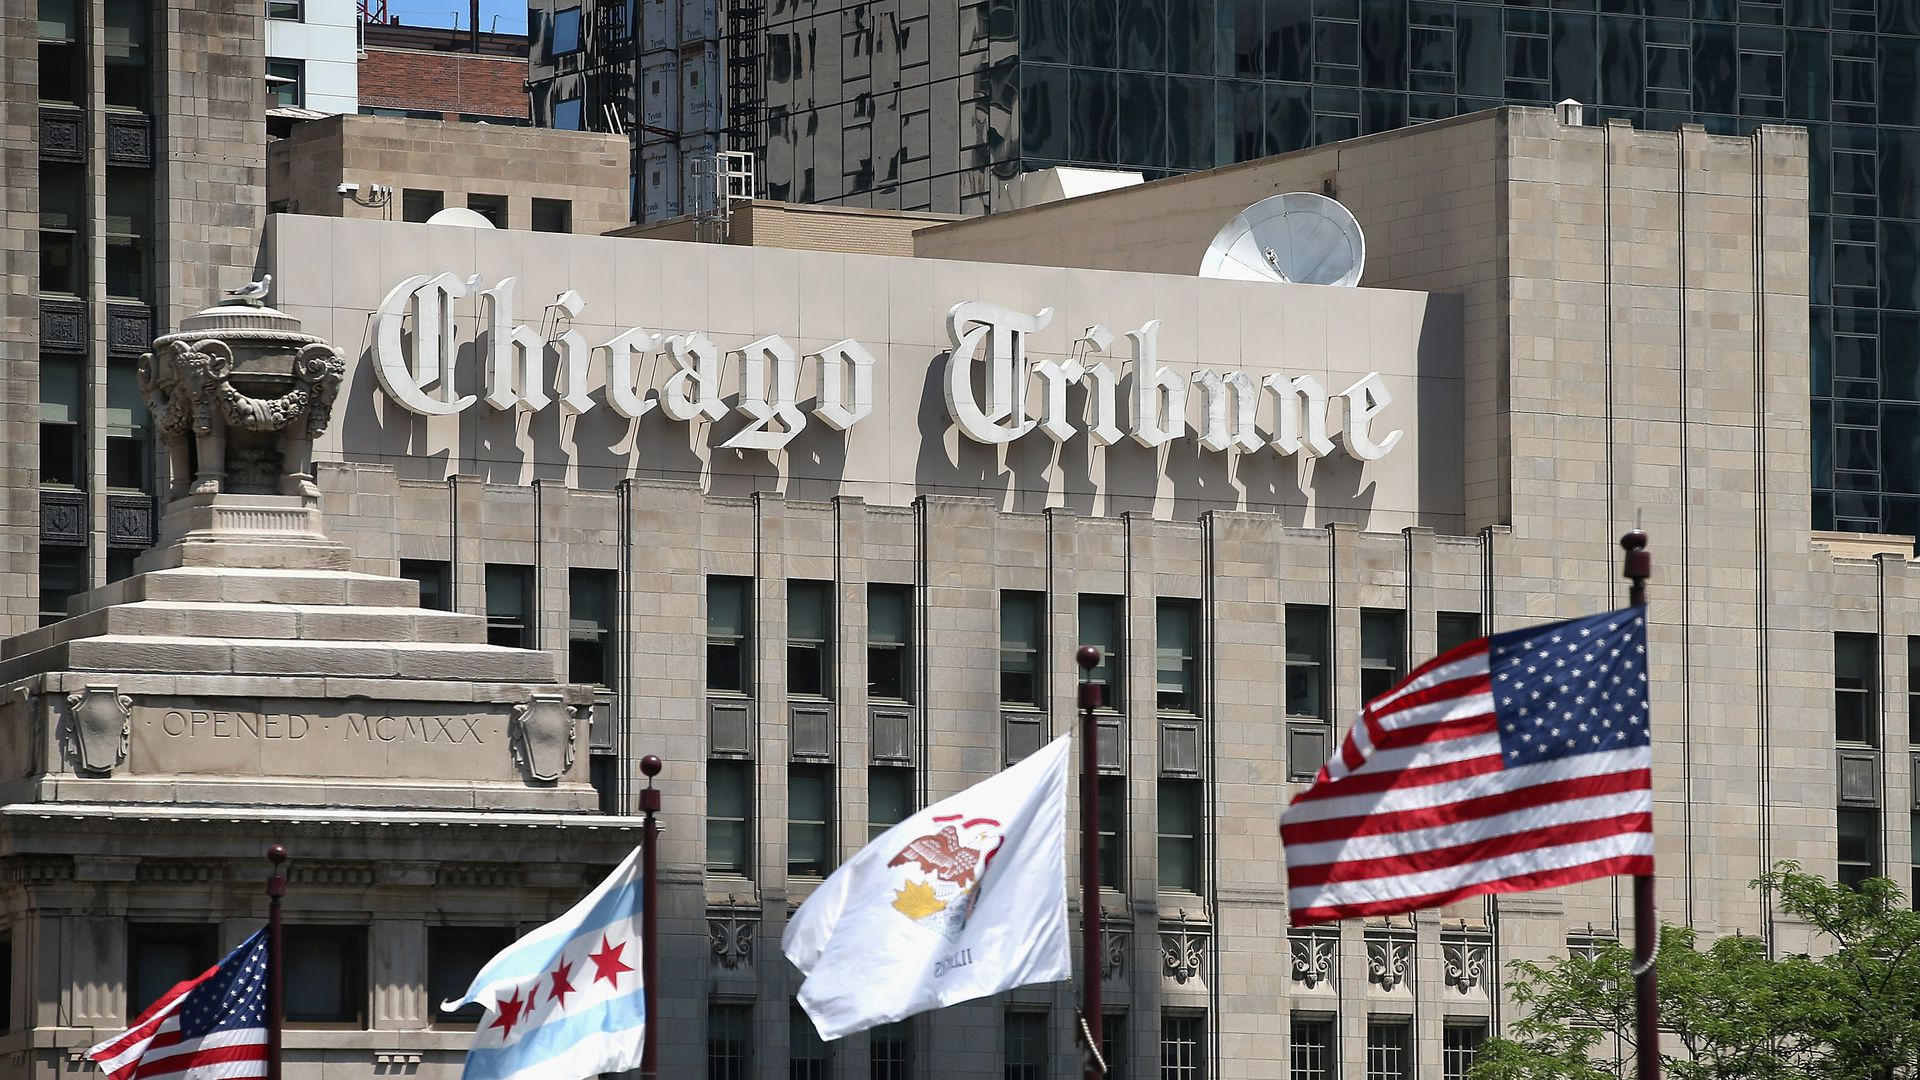 Building front of Chicago Tribune.